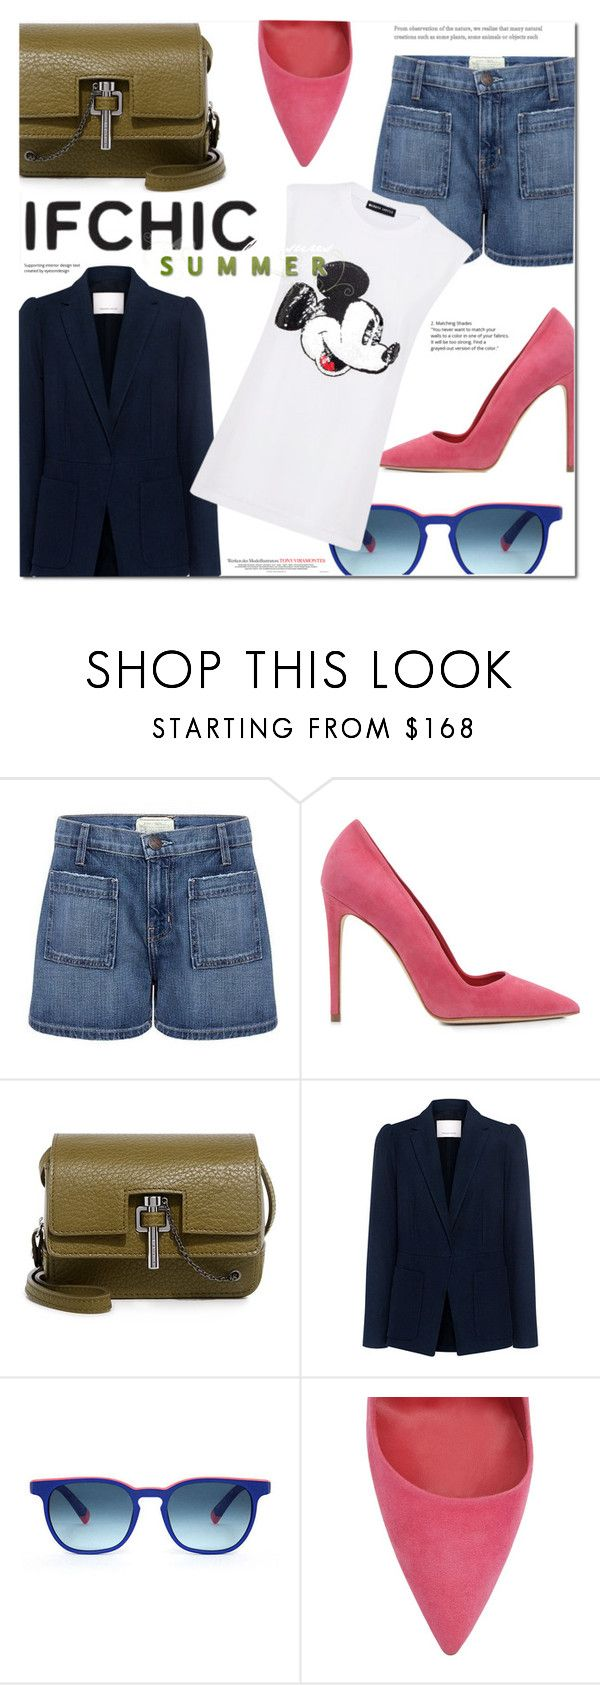 """""""IFCHIC.COM SUMMER SALE"""" by monica-dick ❤ liked on Polyvore featuring Current/Elliott, Dee Keller, Carven, Rebecca Taylor, Etnia Barcelona, Markus Lupfer, vintage, summersale and ifchic"""